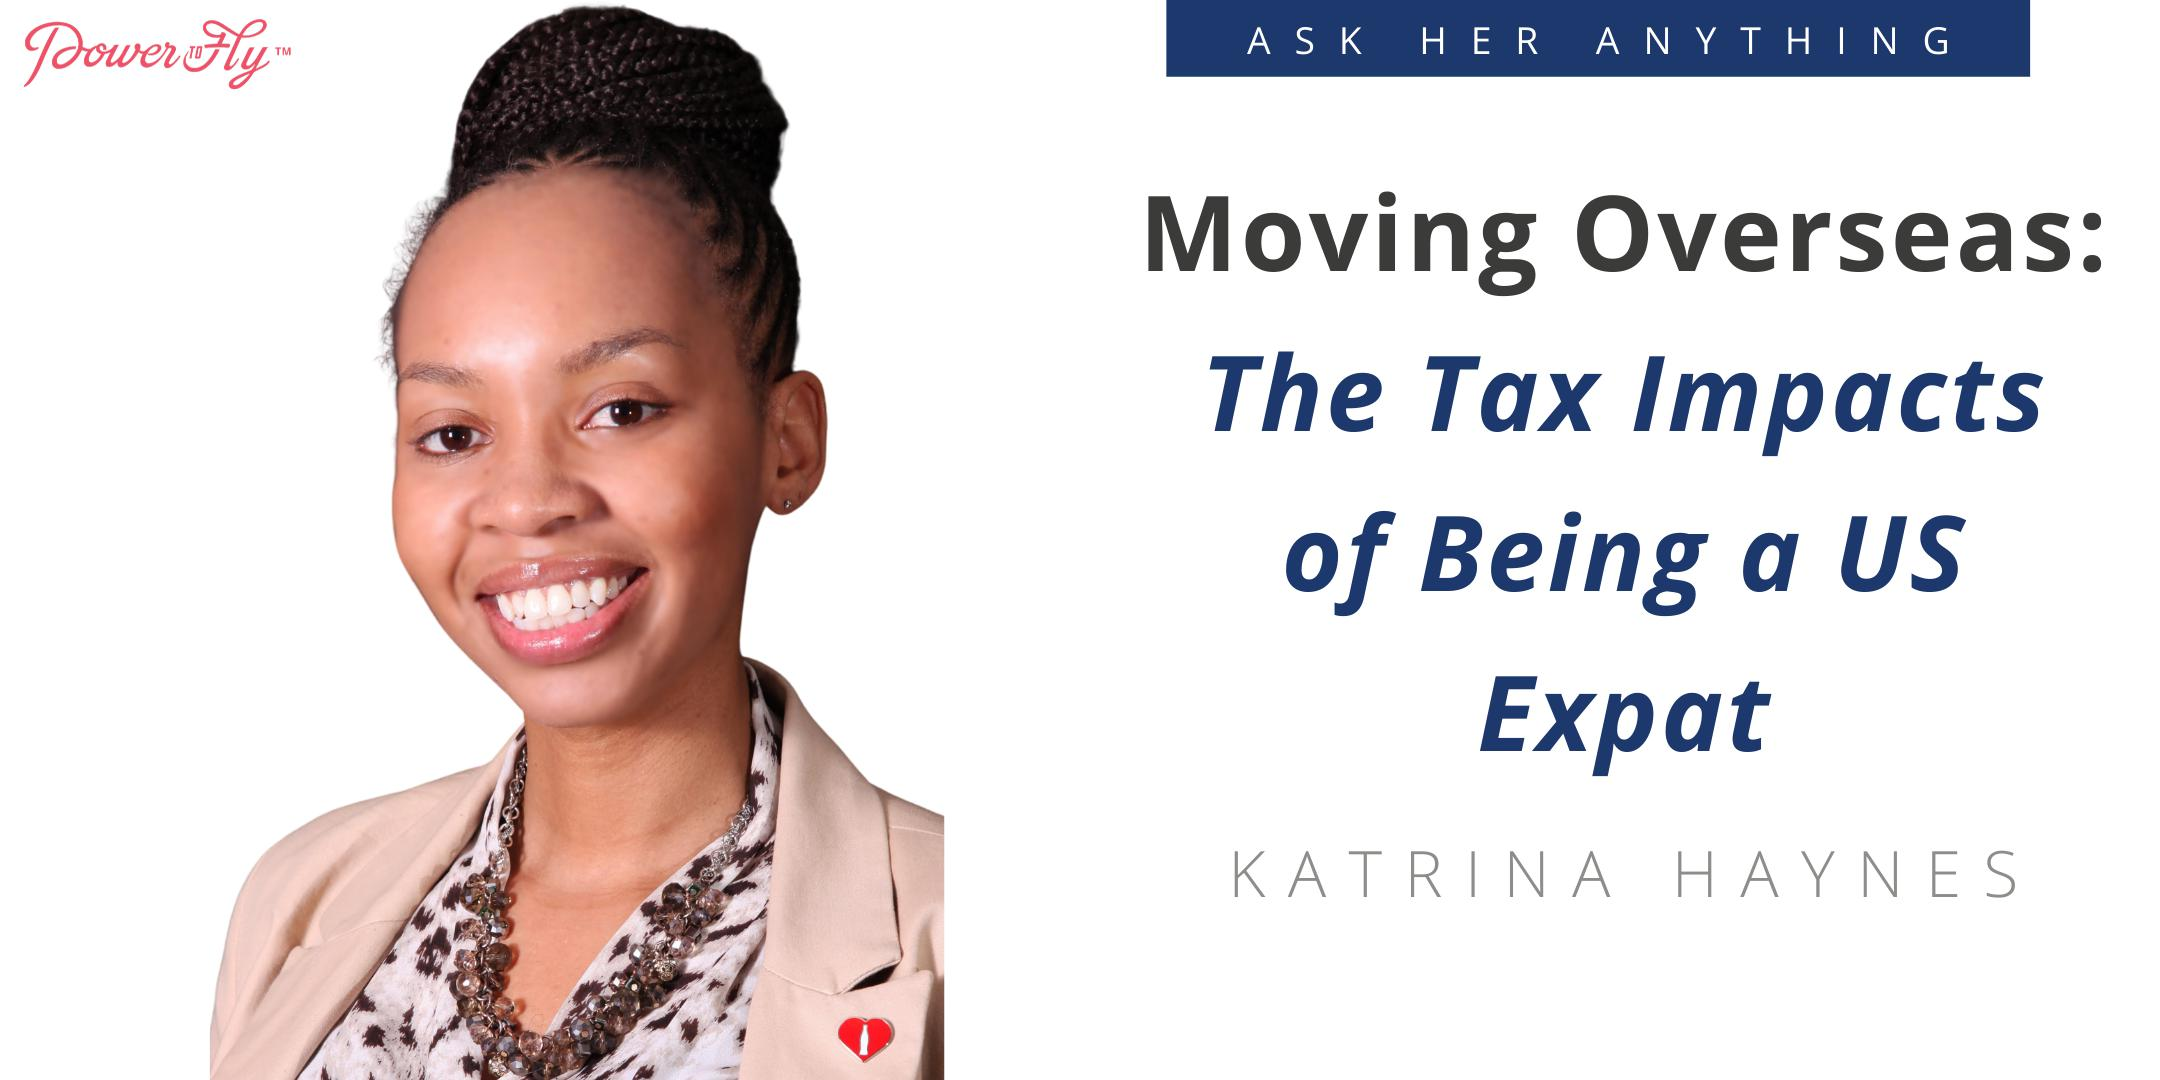 Moving Overseas: The Tax Impacts of Being a US Expat